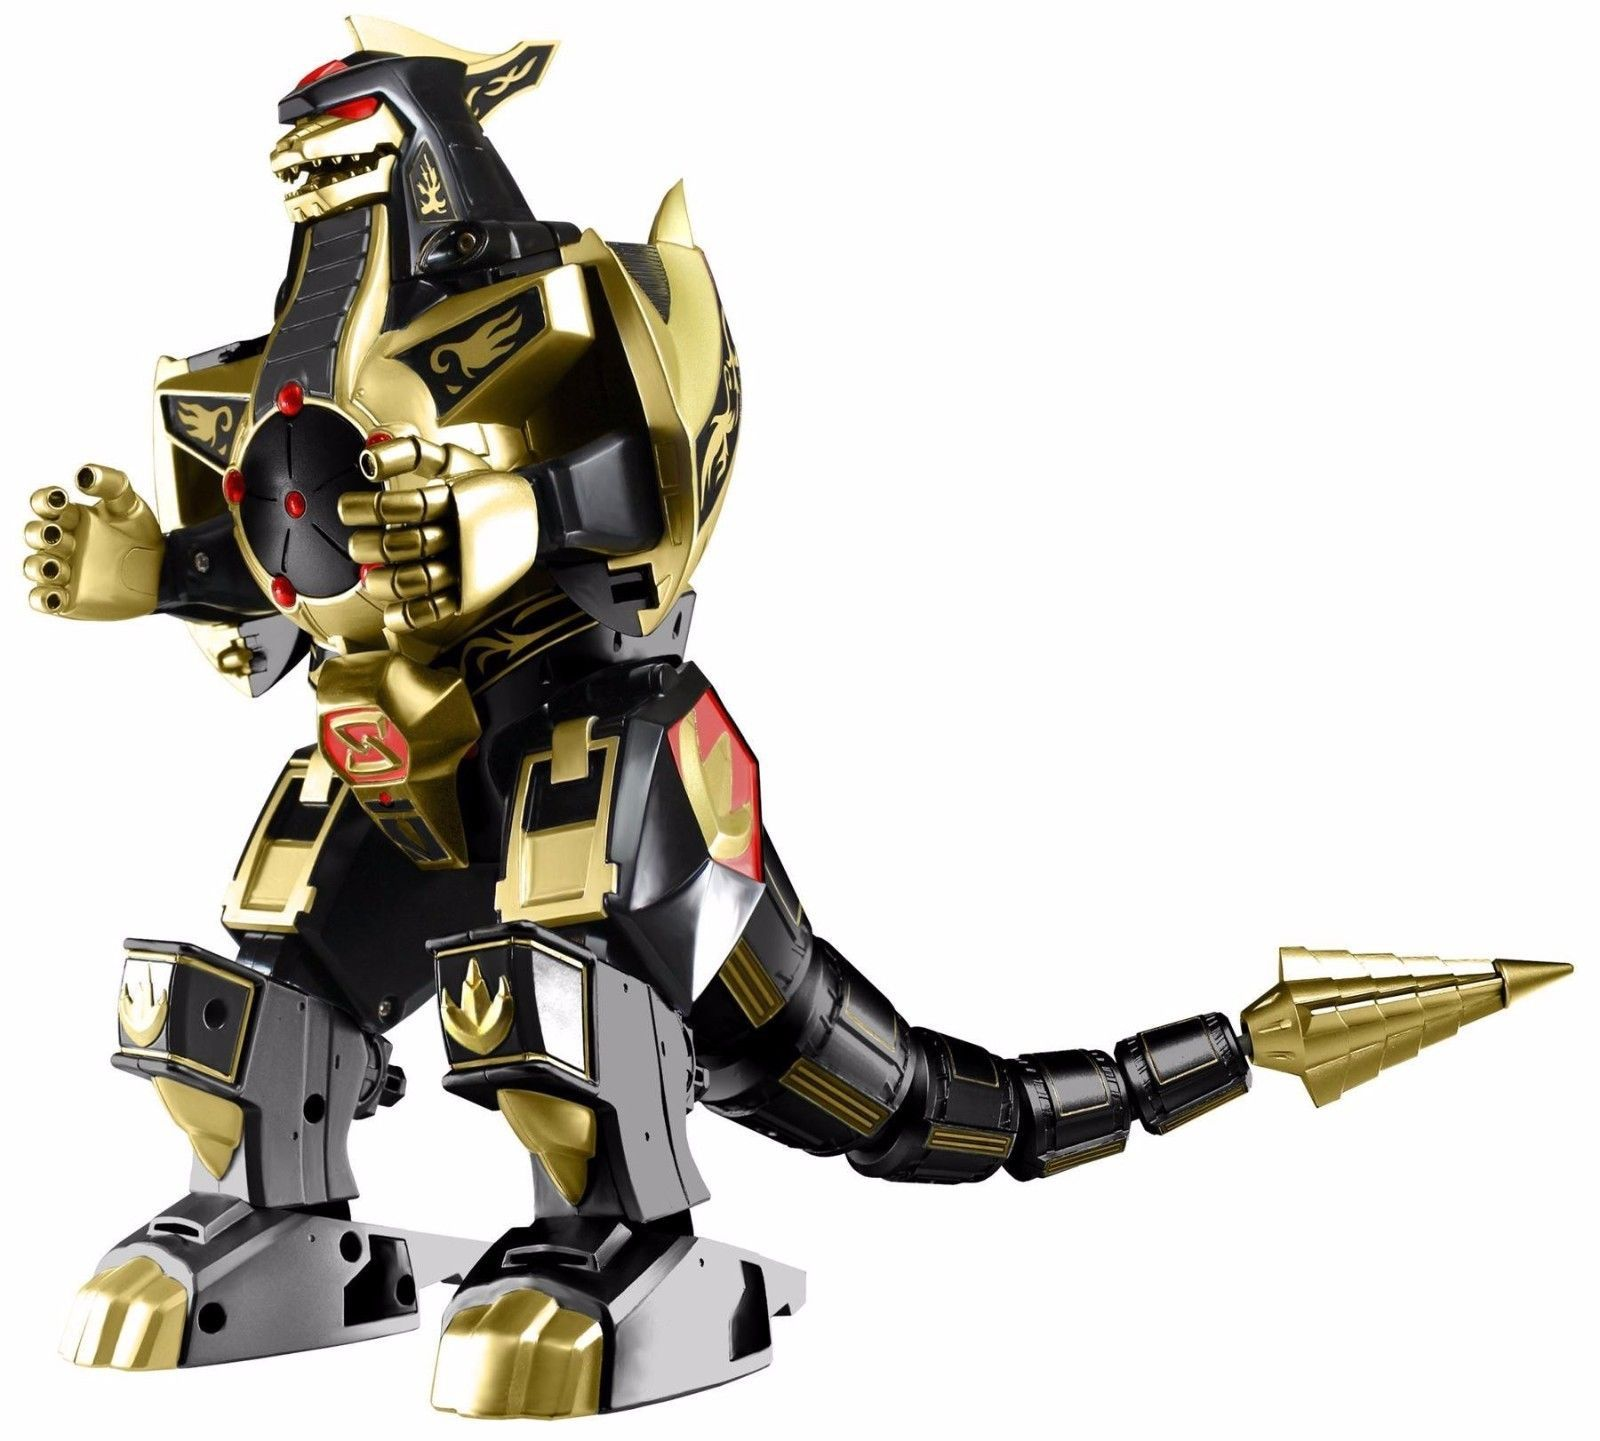 Original Bandai Mighty Morphin Power Rangers Legacy Dragonzord Gold Black Figure